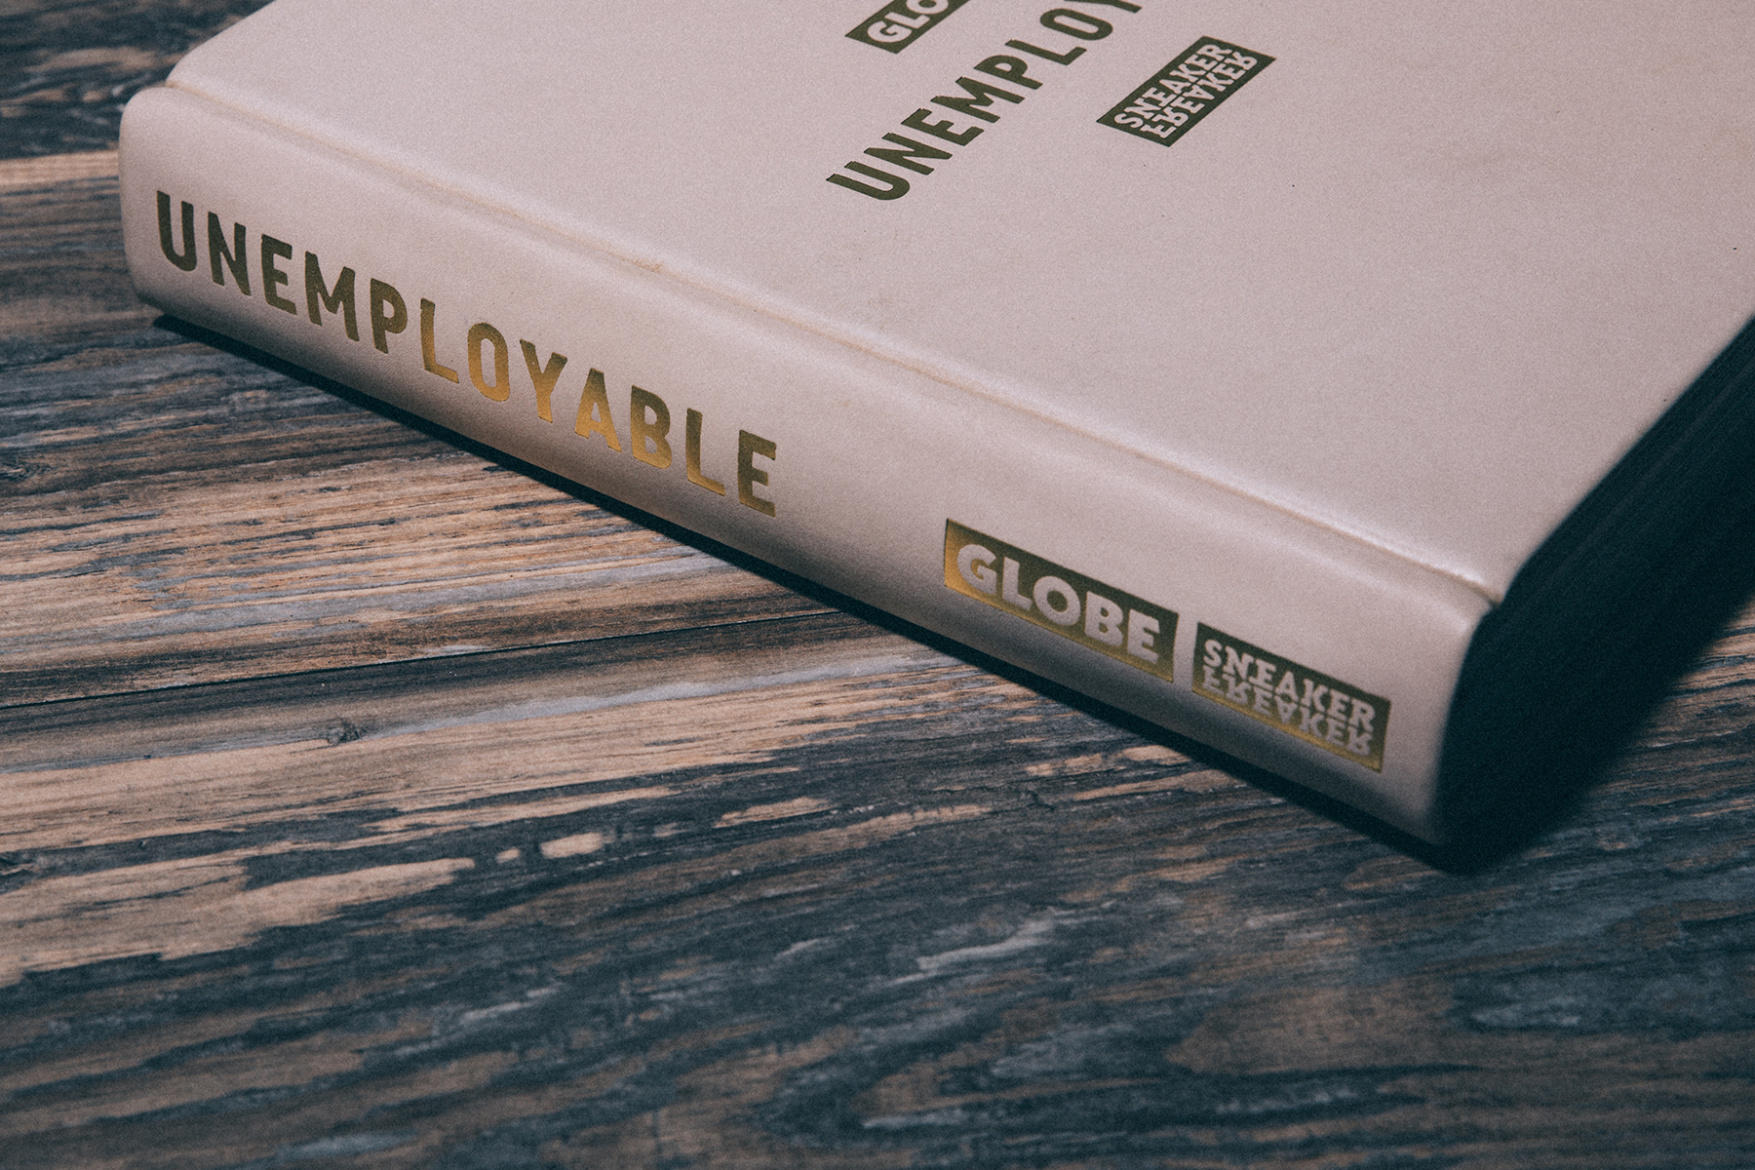 sneaker-freaker-globe-unemployable-book-6